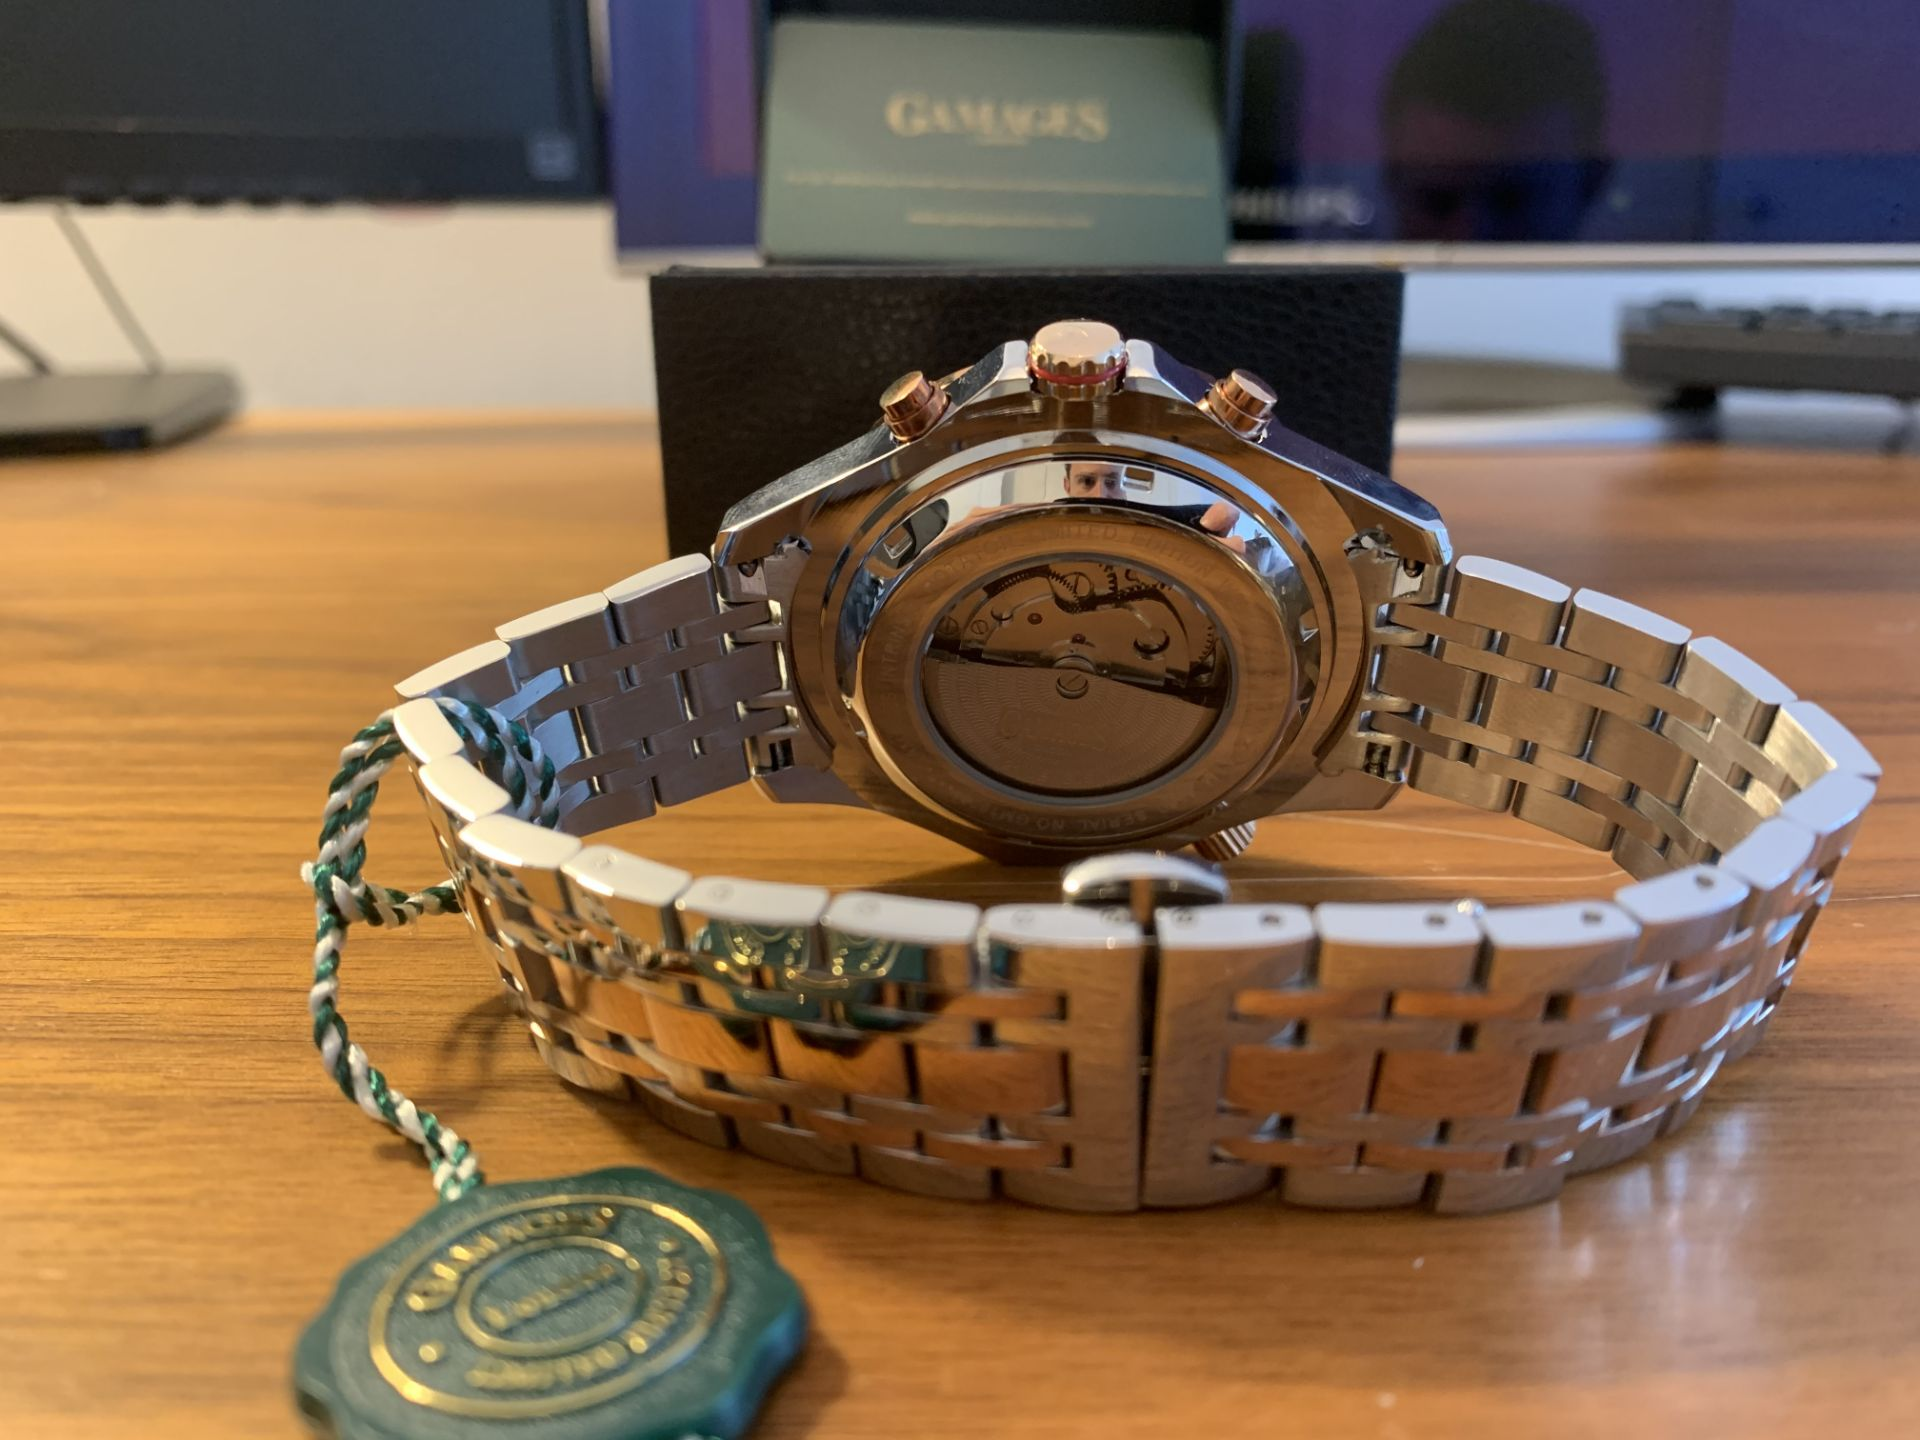 Ltd Ed Hand Assembled Gamages Intrinsic Rotator Automatic Two Tone – 5 Yr Warranty & Free Delivery - Image 5 of 5